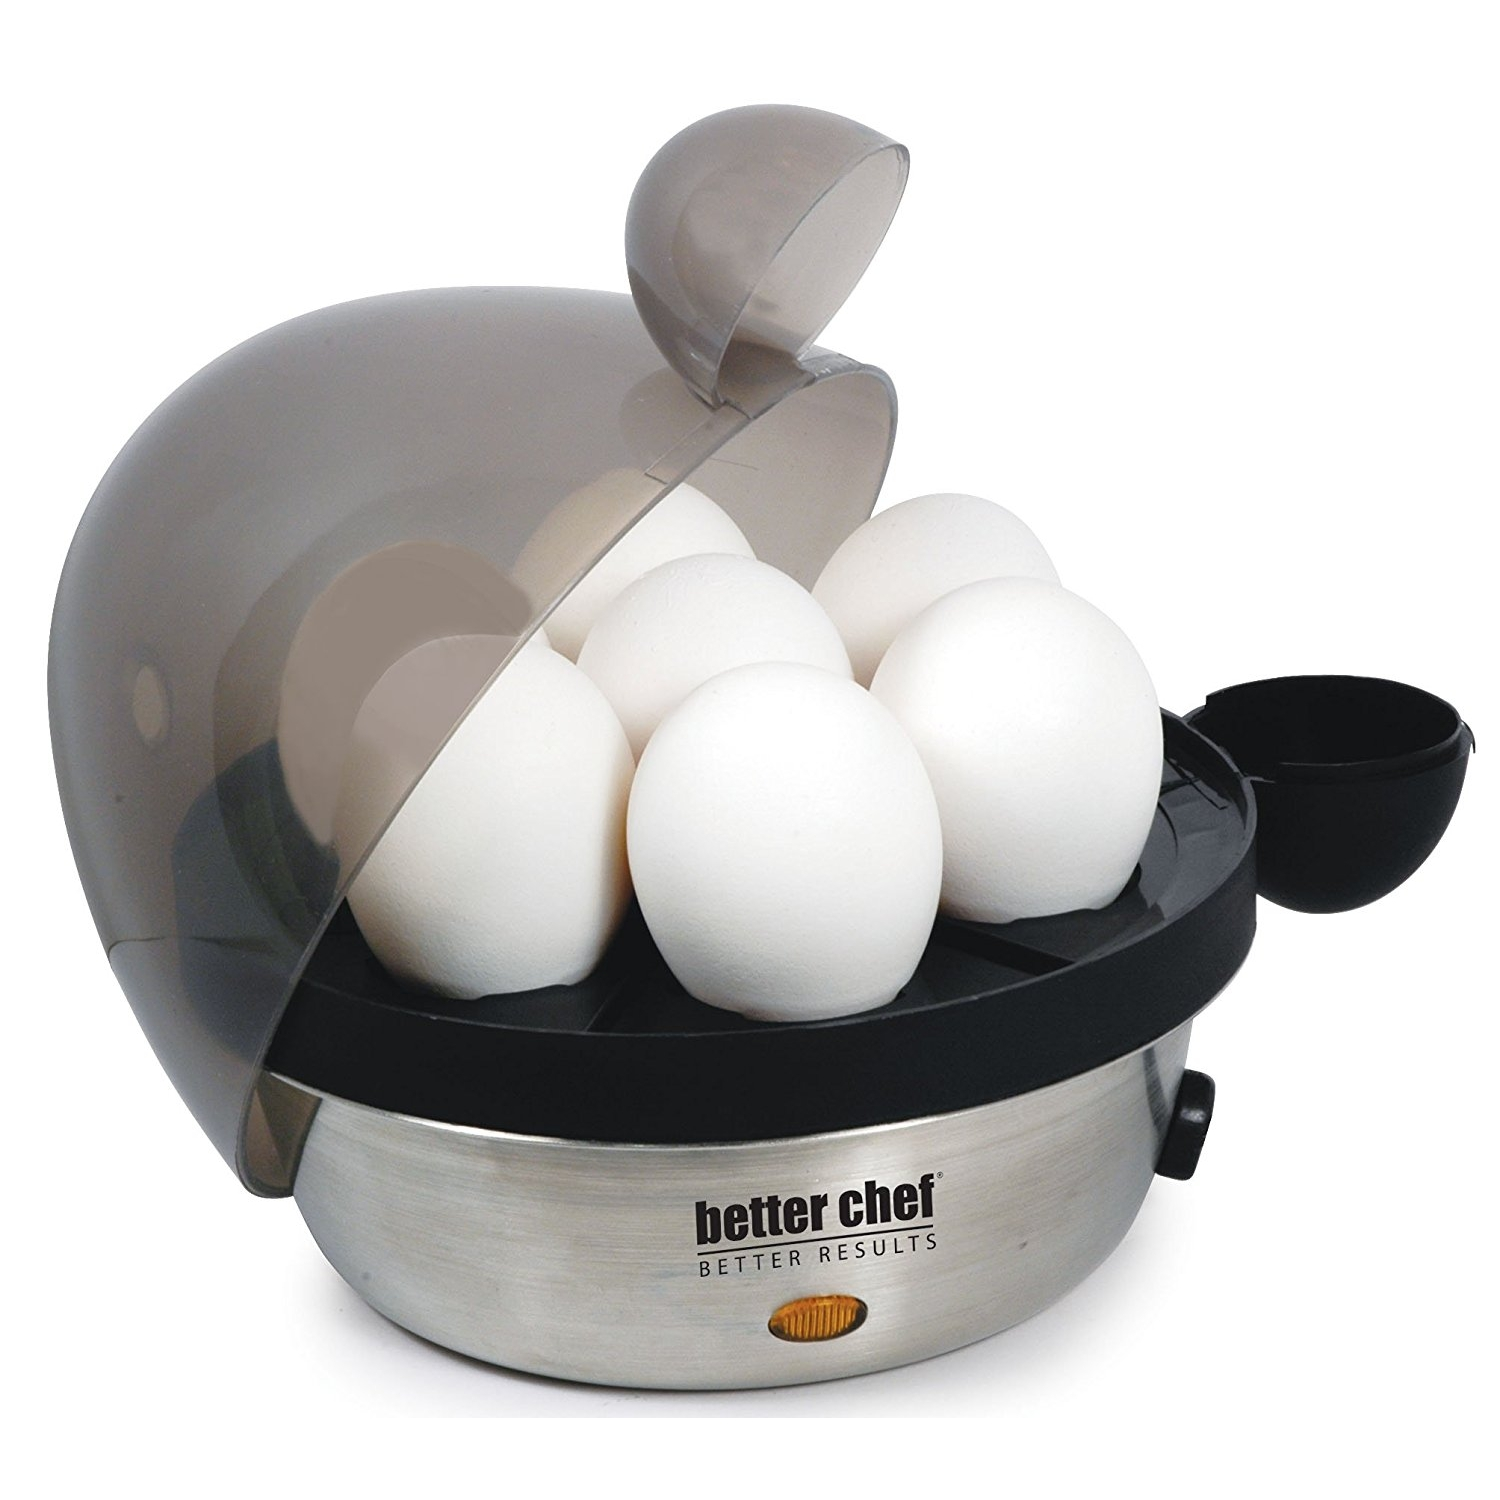 Egg Cooker Stainless Steel, Electric Hard Boiled Rapid Poached Egg Cooker